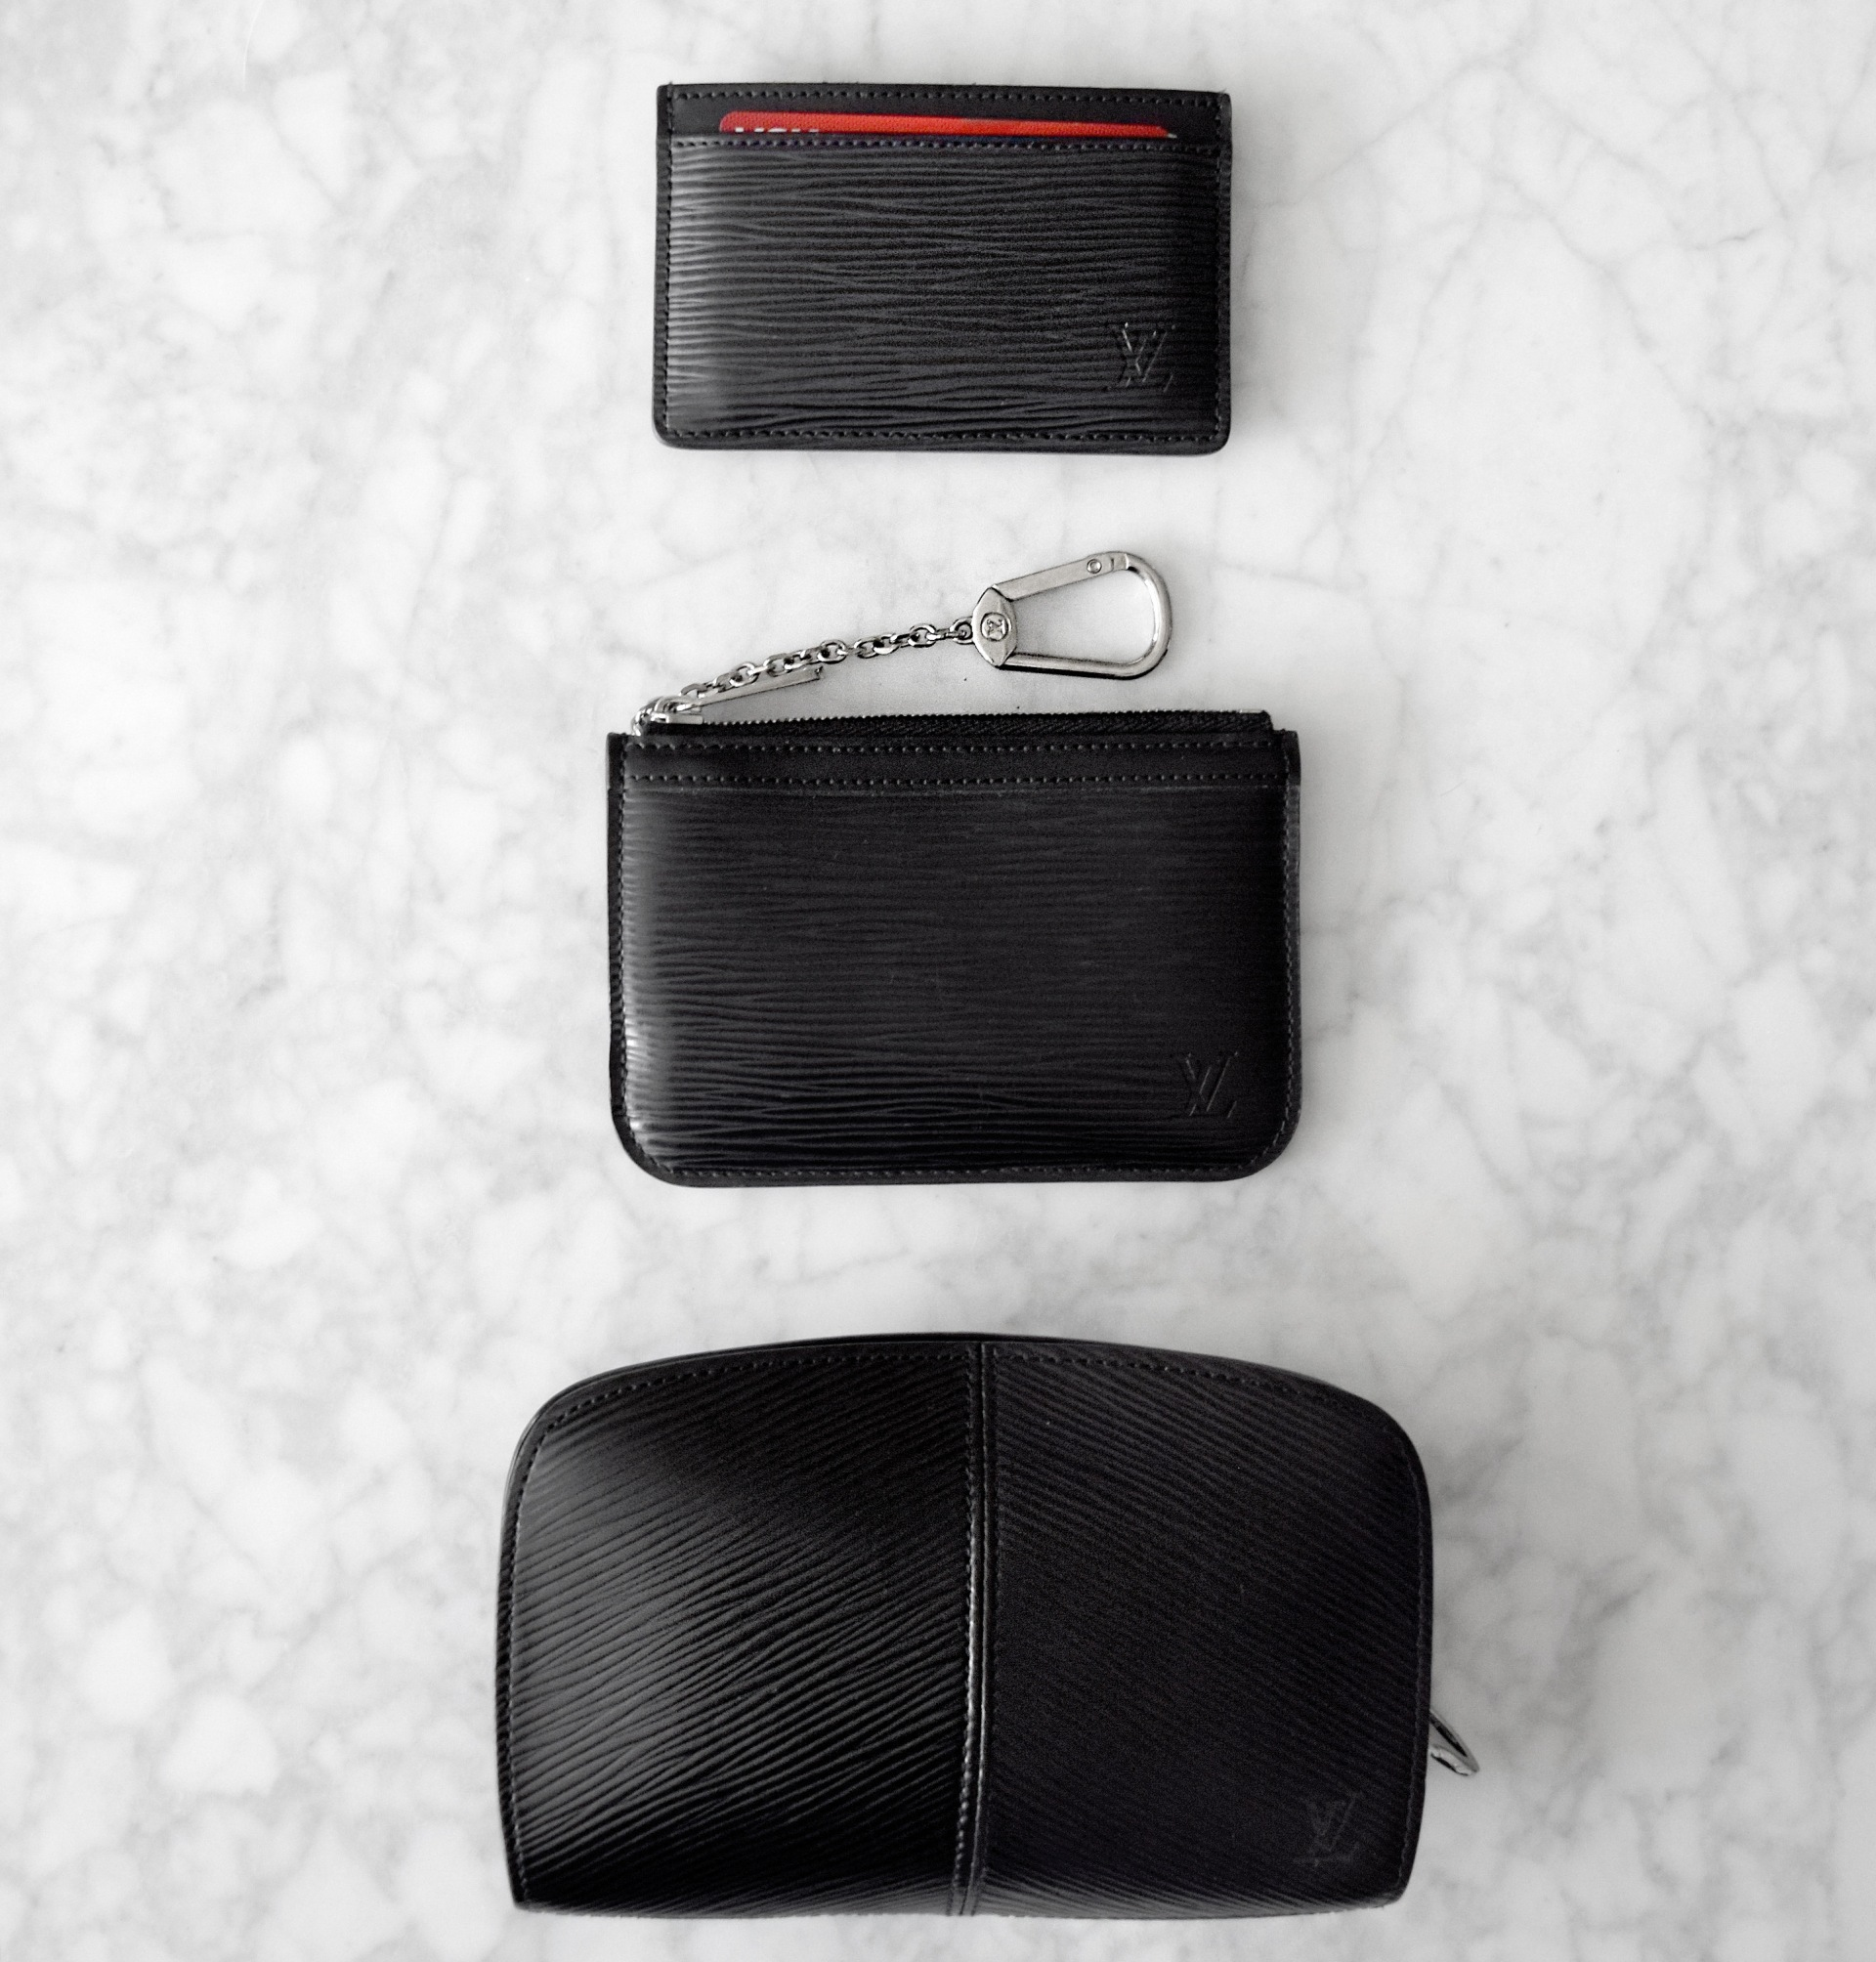 Louis Vuitton Epi Leather Collection | Simple Card Case / Pochette Cles Key Pouch / Demi-Lune Wallet | CoffeeAndHandbags.com